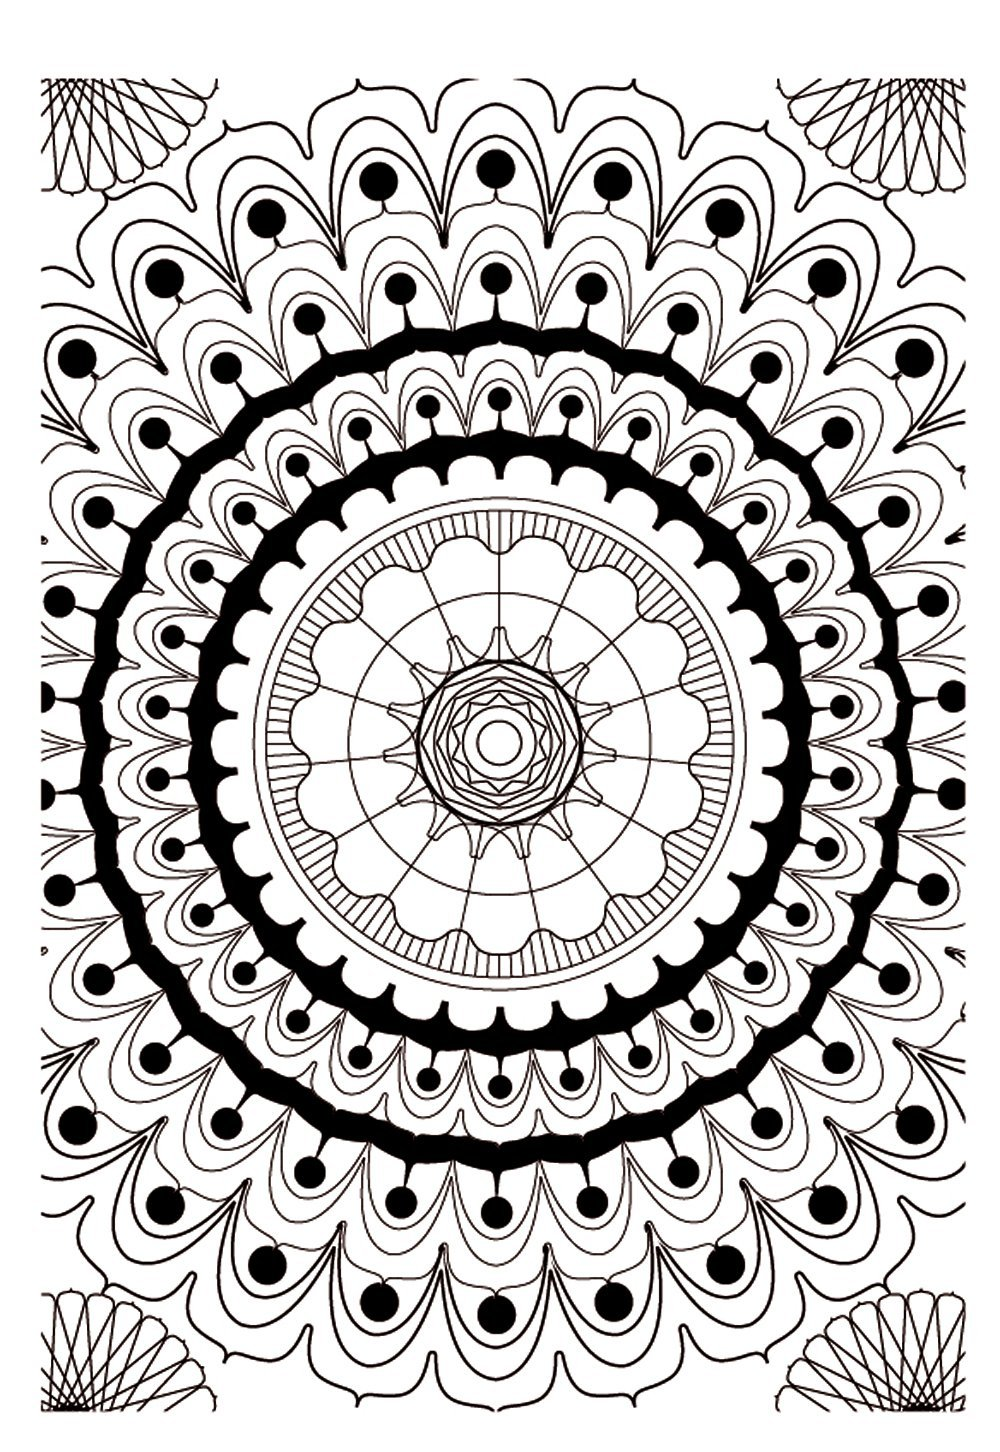 Mandala to color zen relax free 9 - Image with : Heart